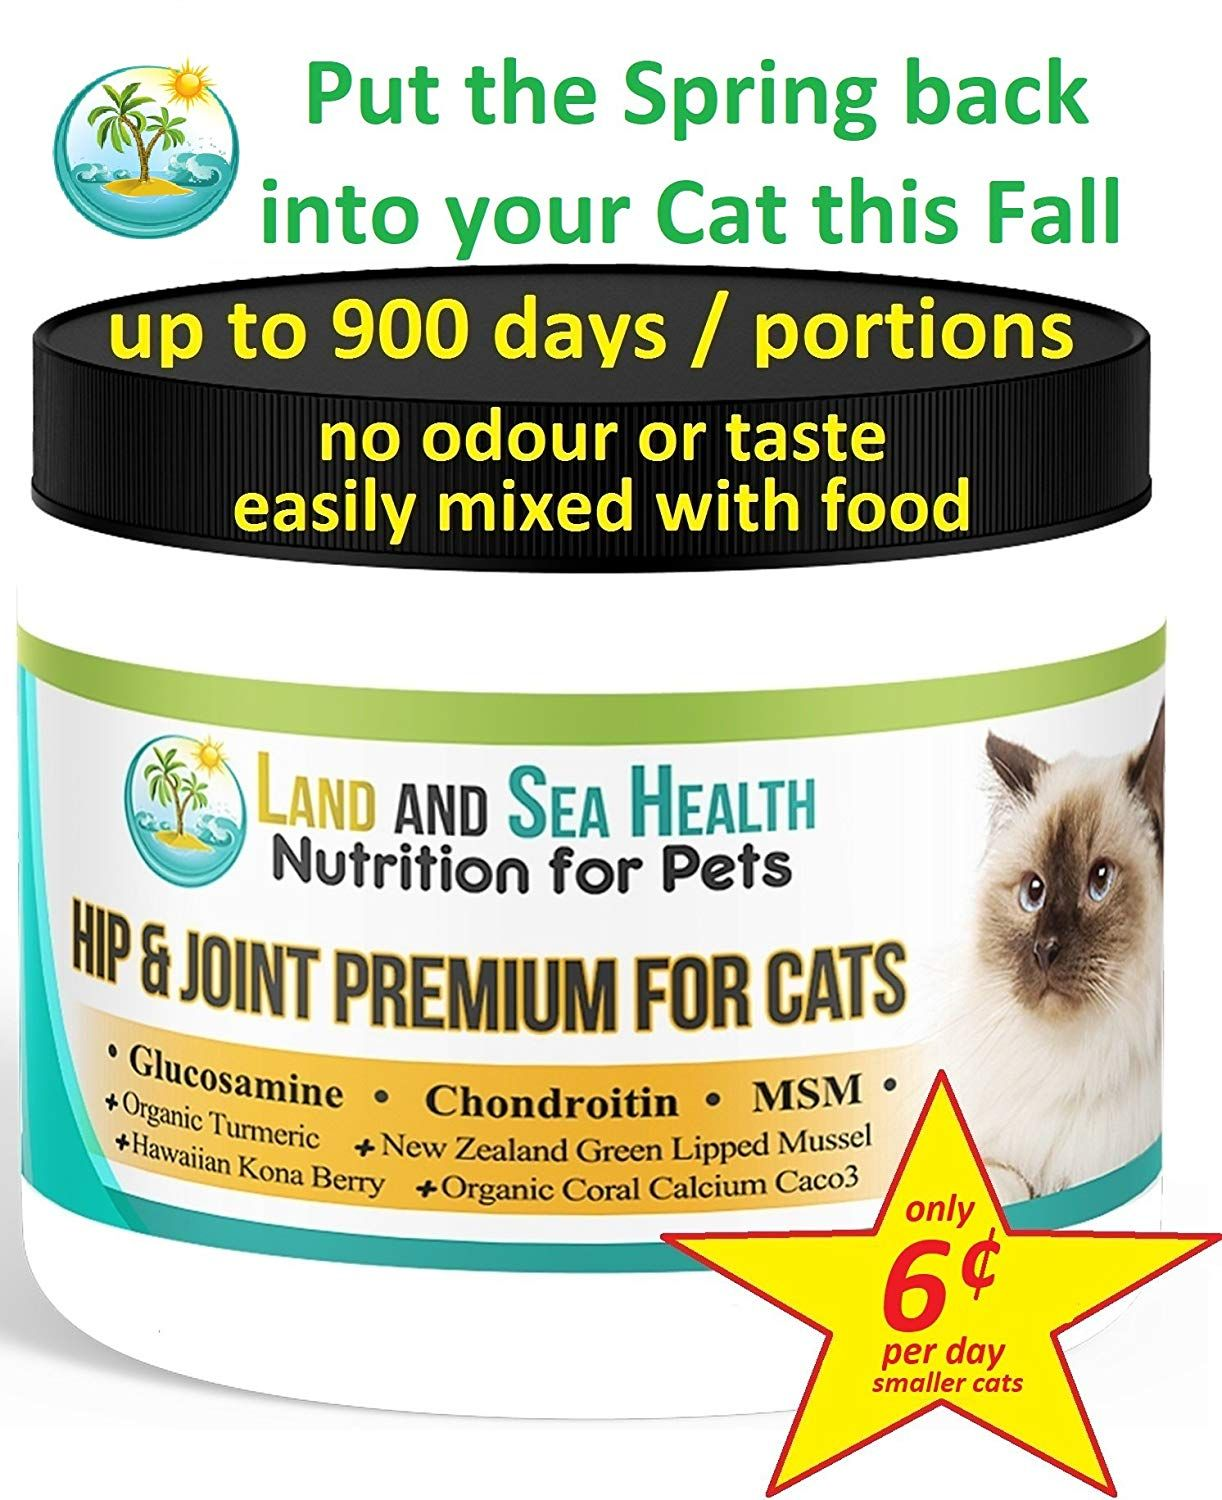 Hip And Joint Premium For Cats Glucosamine Chondroitin Msm Organic Coral Calcium Nz Green Lipped Mussel Green Lipped Mussel Organic Turmeric Chondroitin